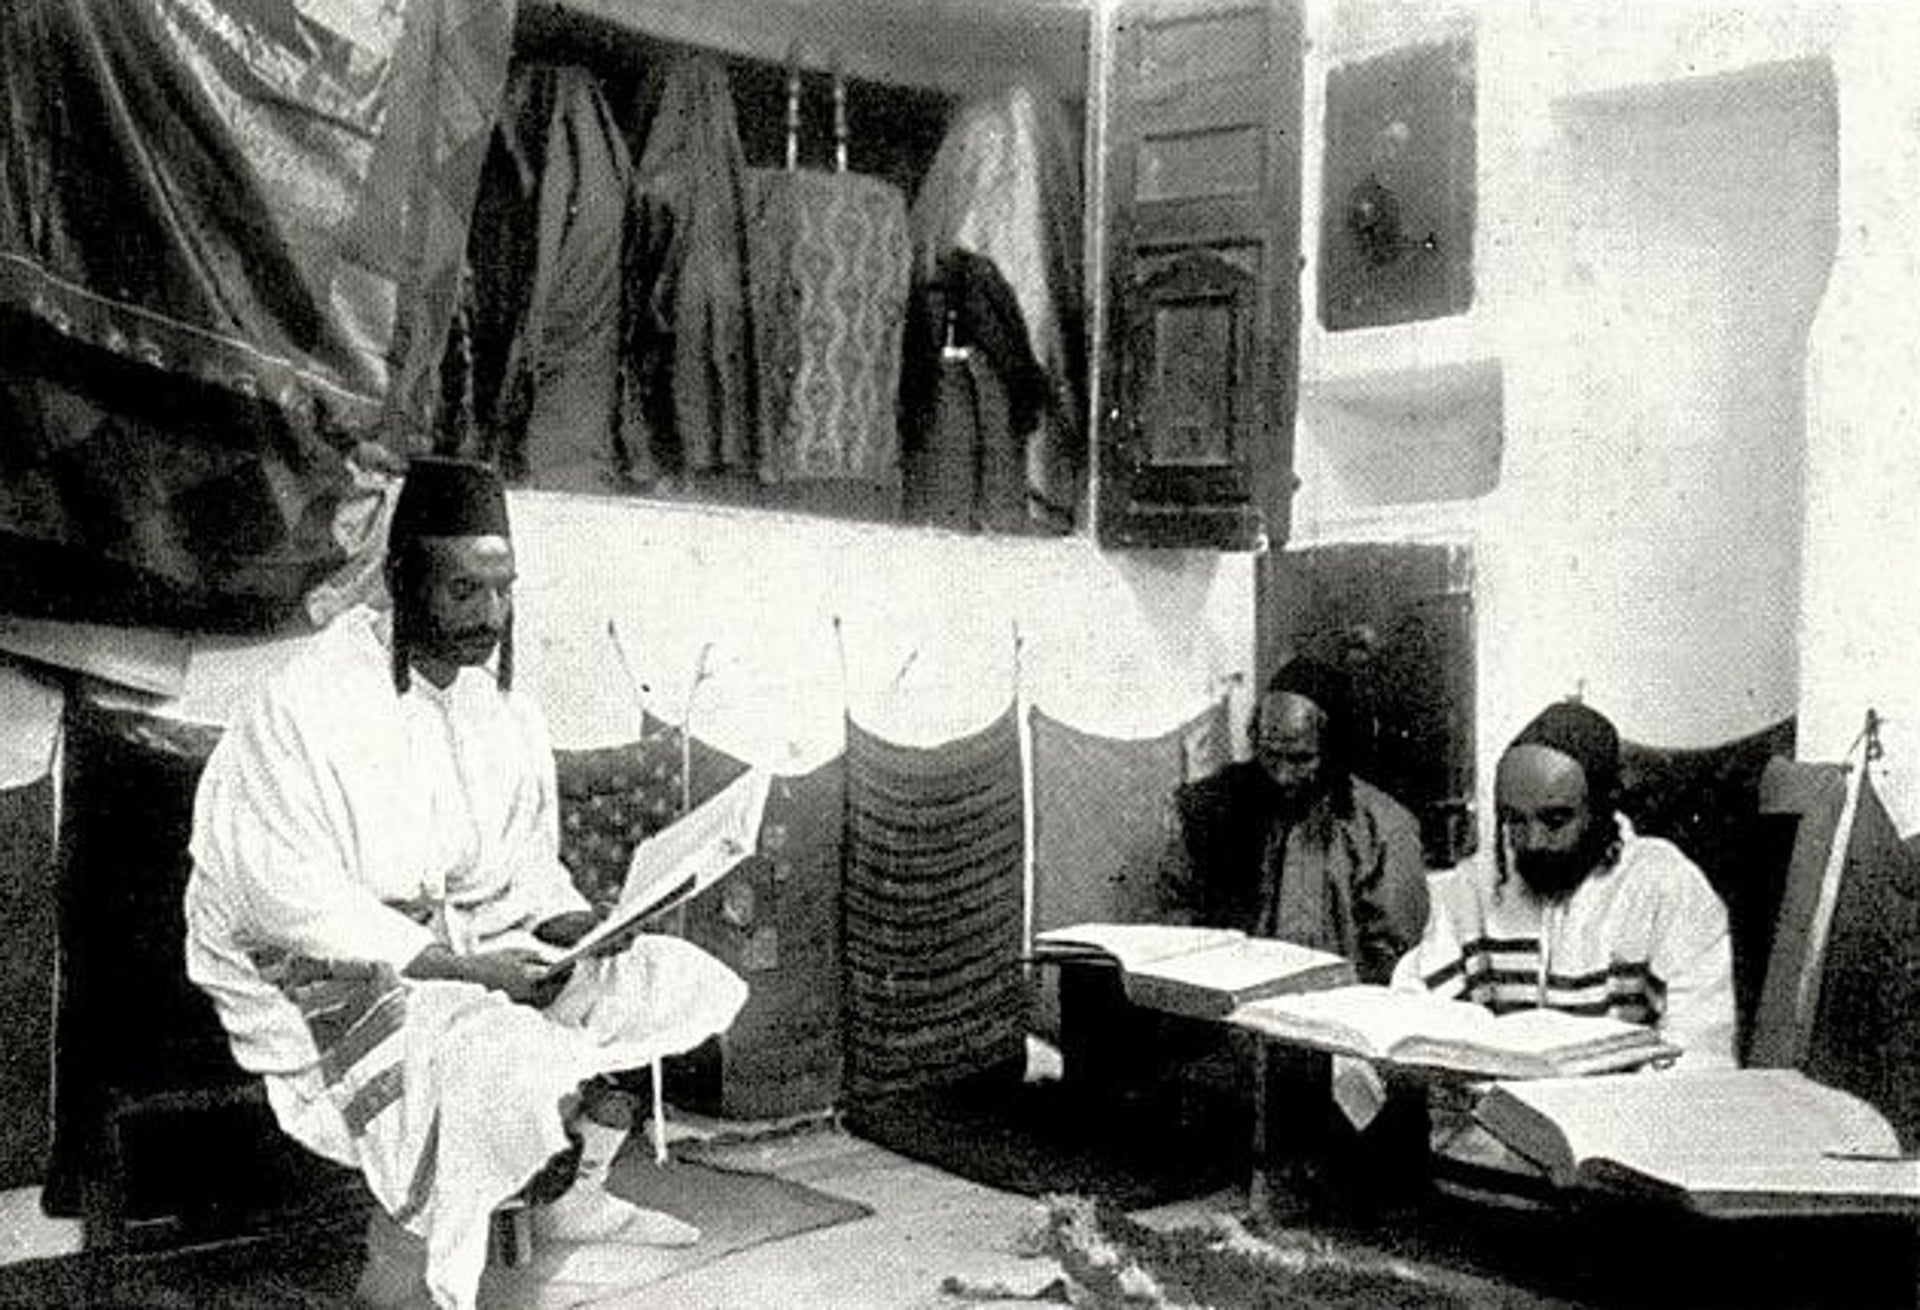 The synagogue of the Jewish community in Sana'a.